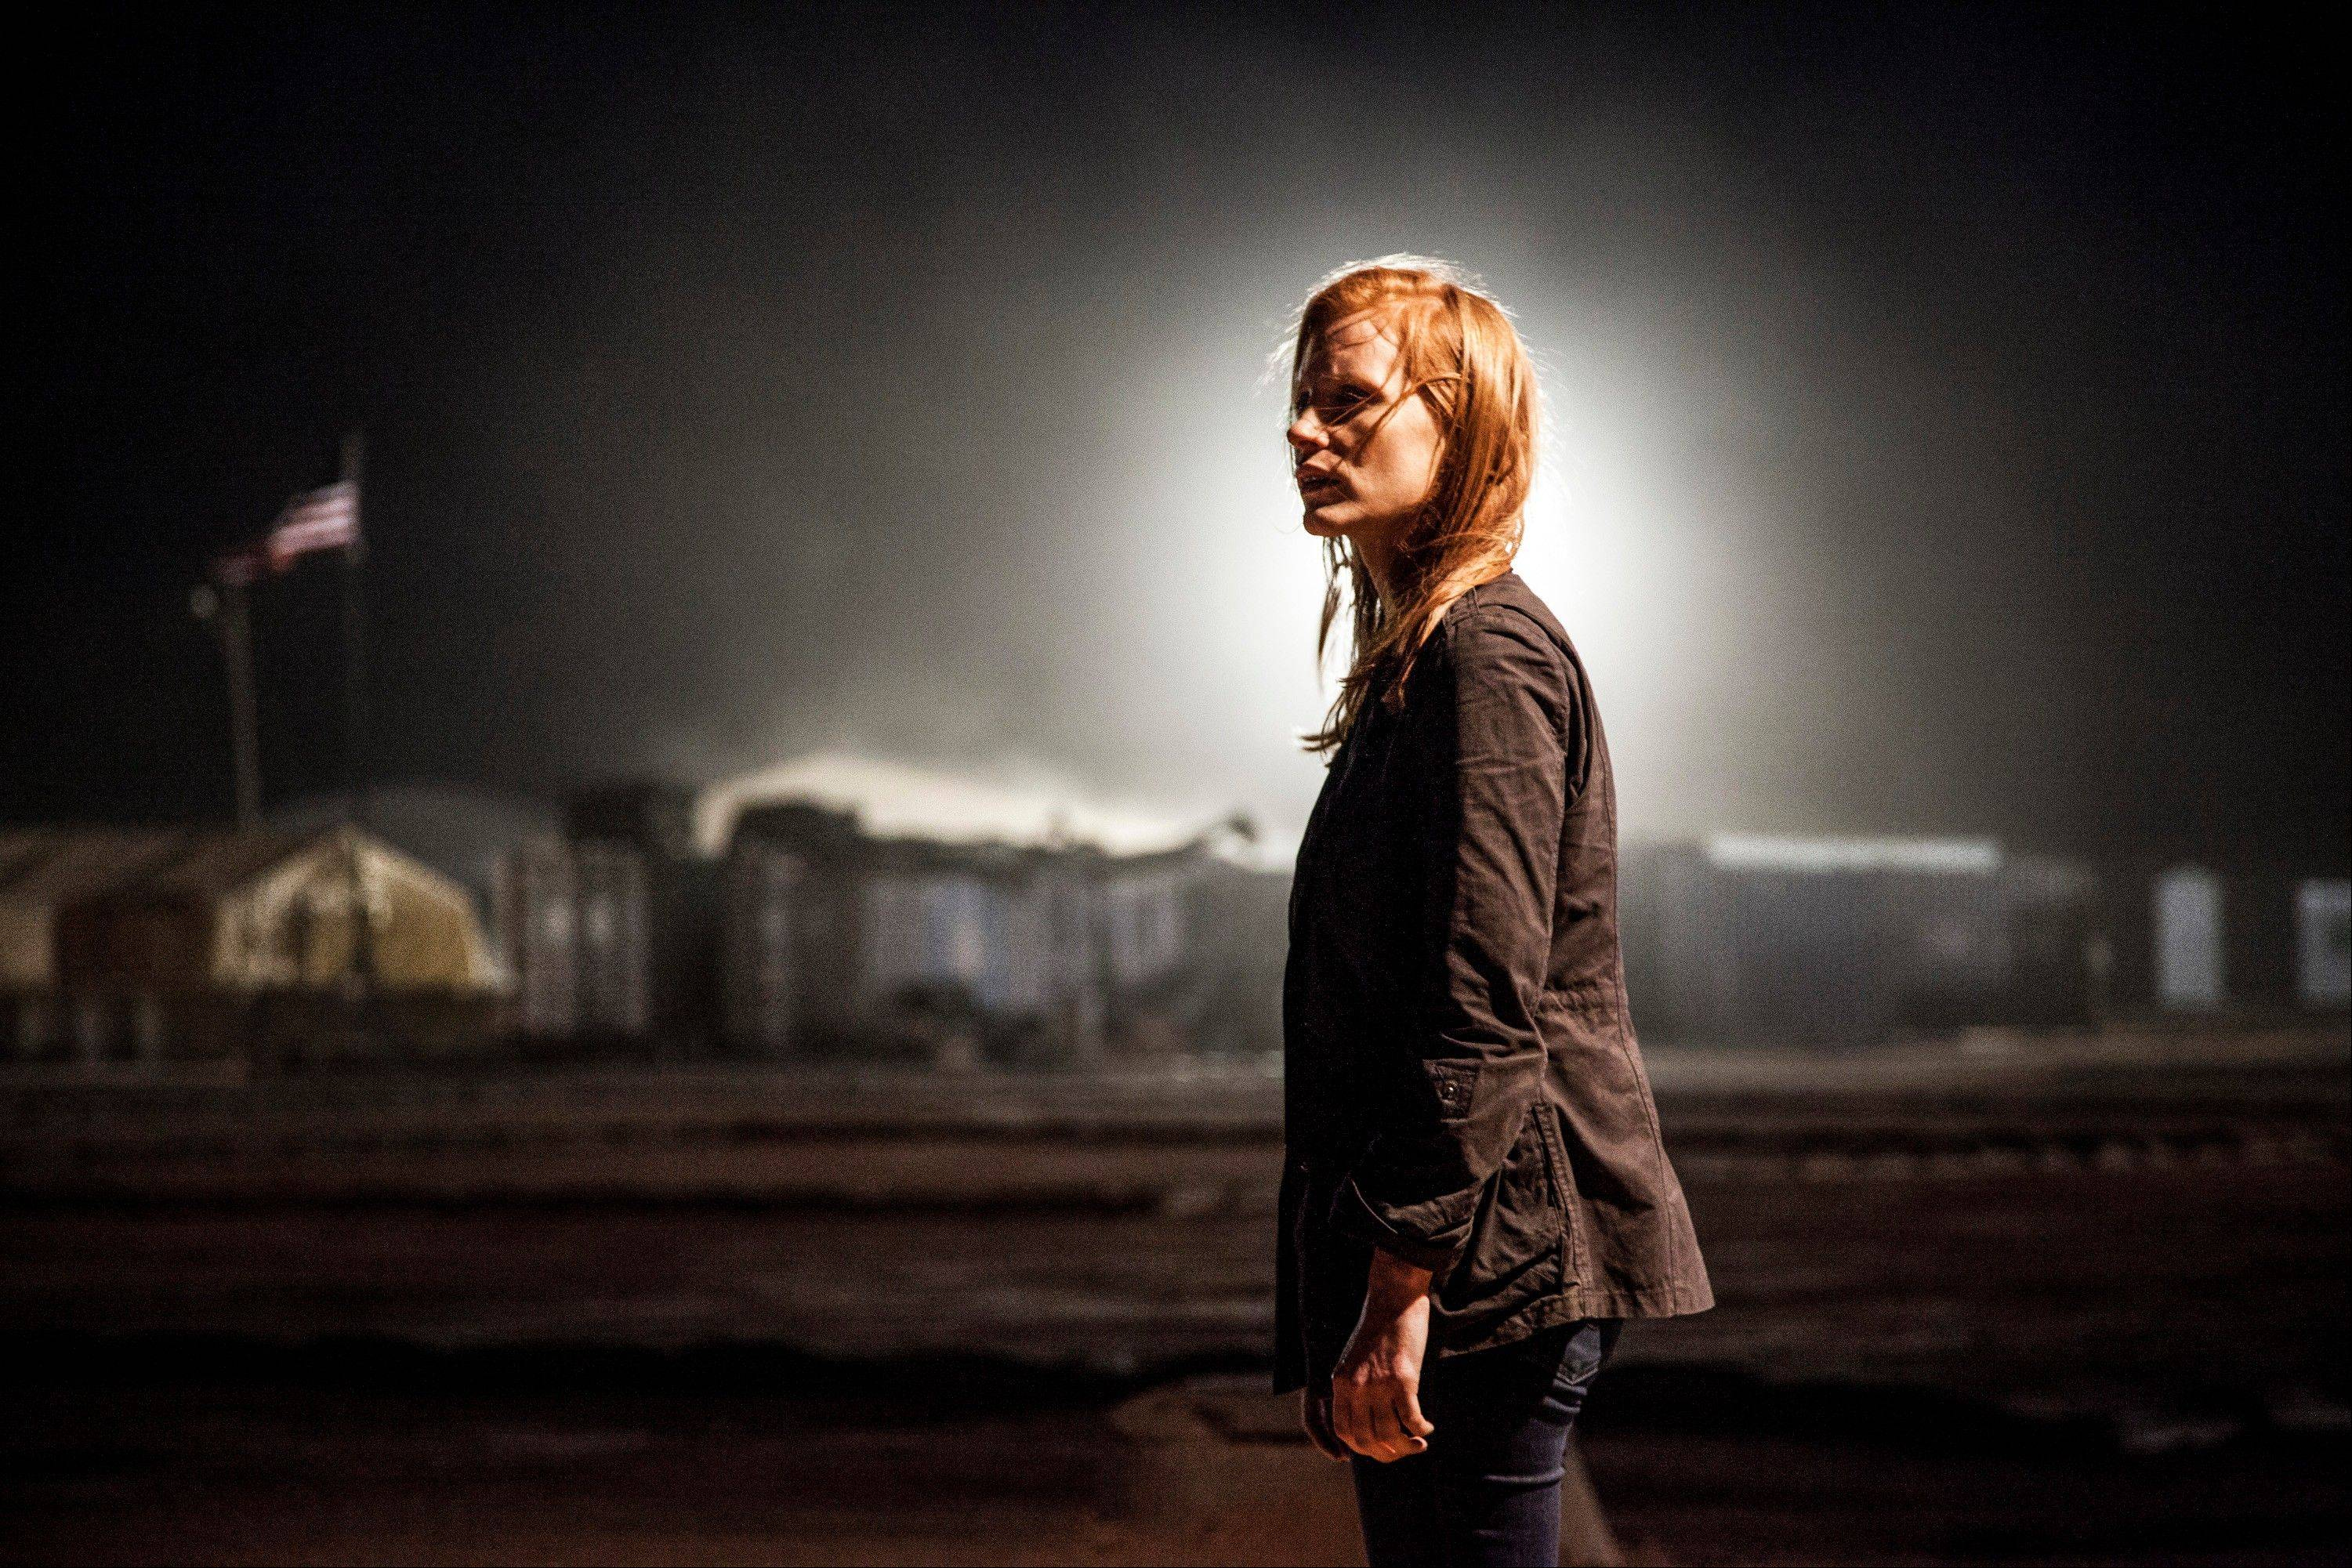 This undated publicity photo released by Columbia Pictures Industries, Inc. shows Jessica Chastain, as Maya, a member of the elite team of spies and military operatives stationed in a covert base overseas, who secretly devoted themselves to finding Osama Bin Laden in Columbia Pictures� new thriller, �Zero Dark Thirty,� directed by Kathryn Bigelow. The film made $24 million in its first week of release and captured the No. 1 spot at the box office.